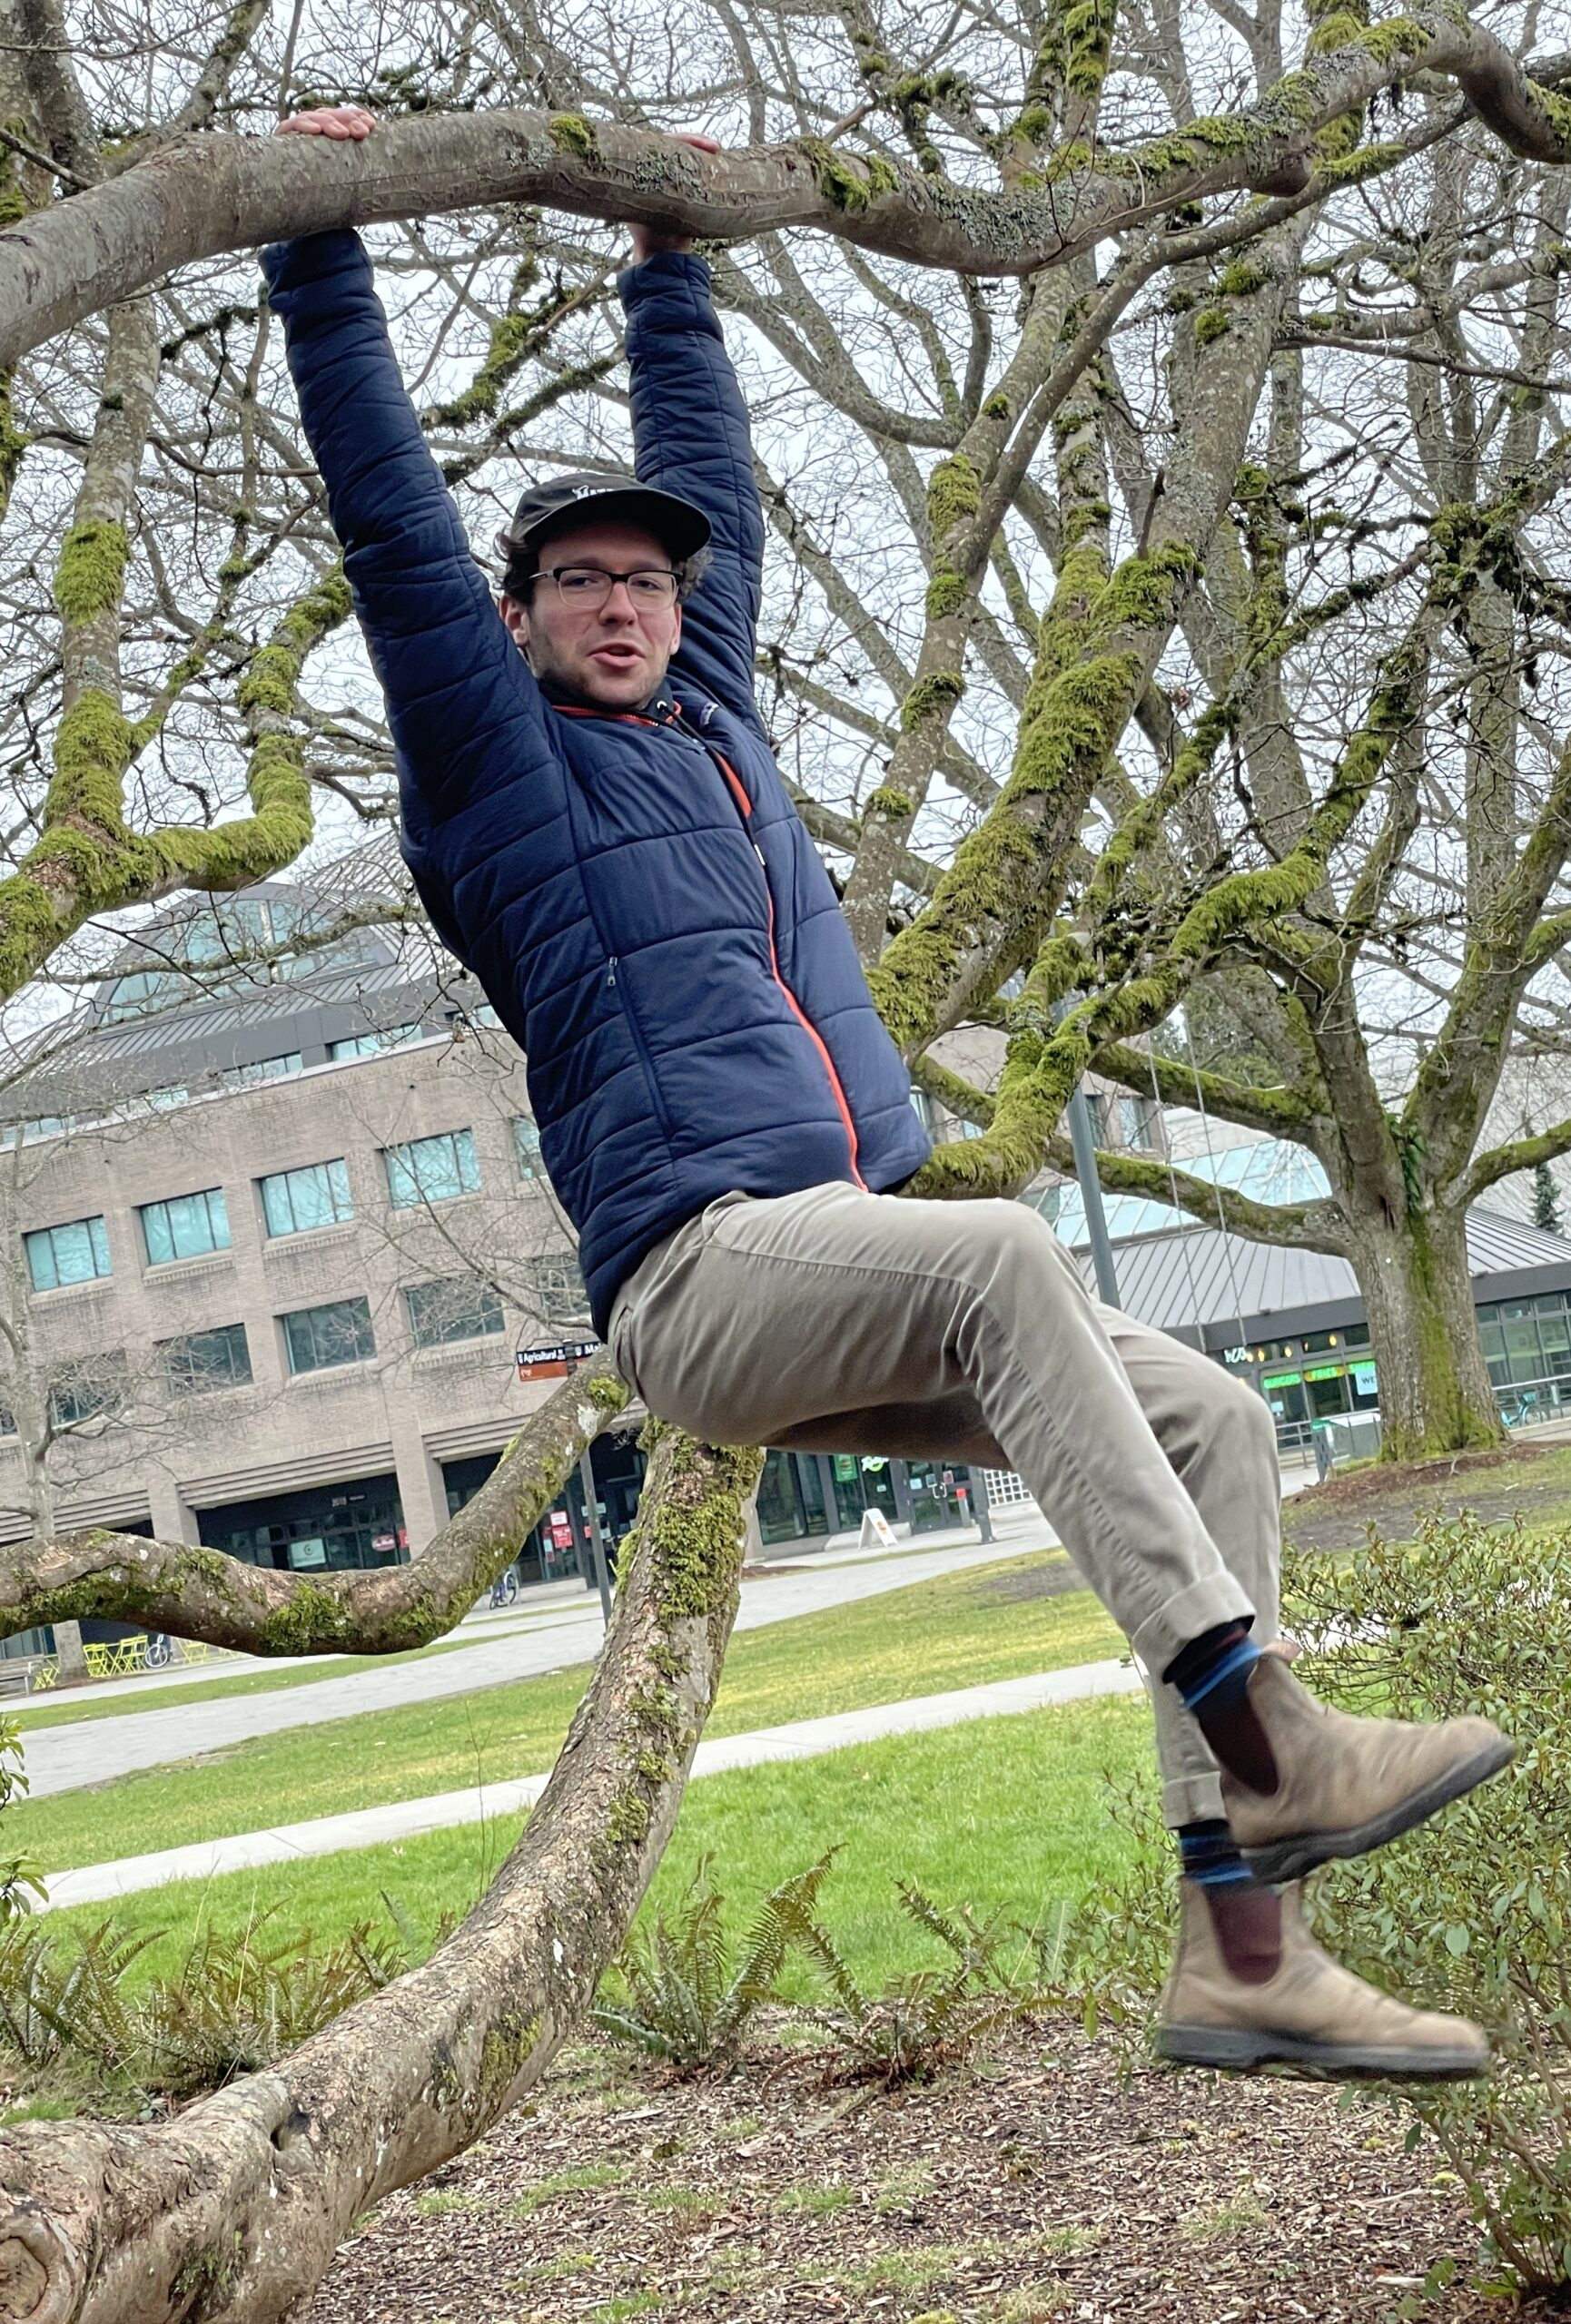 UBC Forestry Co-op Student Nicholas Mantegna swings on a tree at UBC.